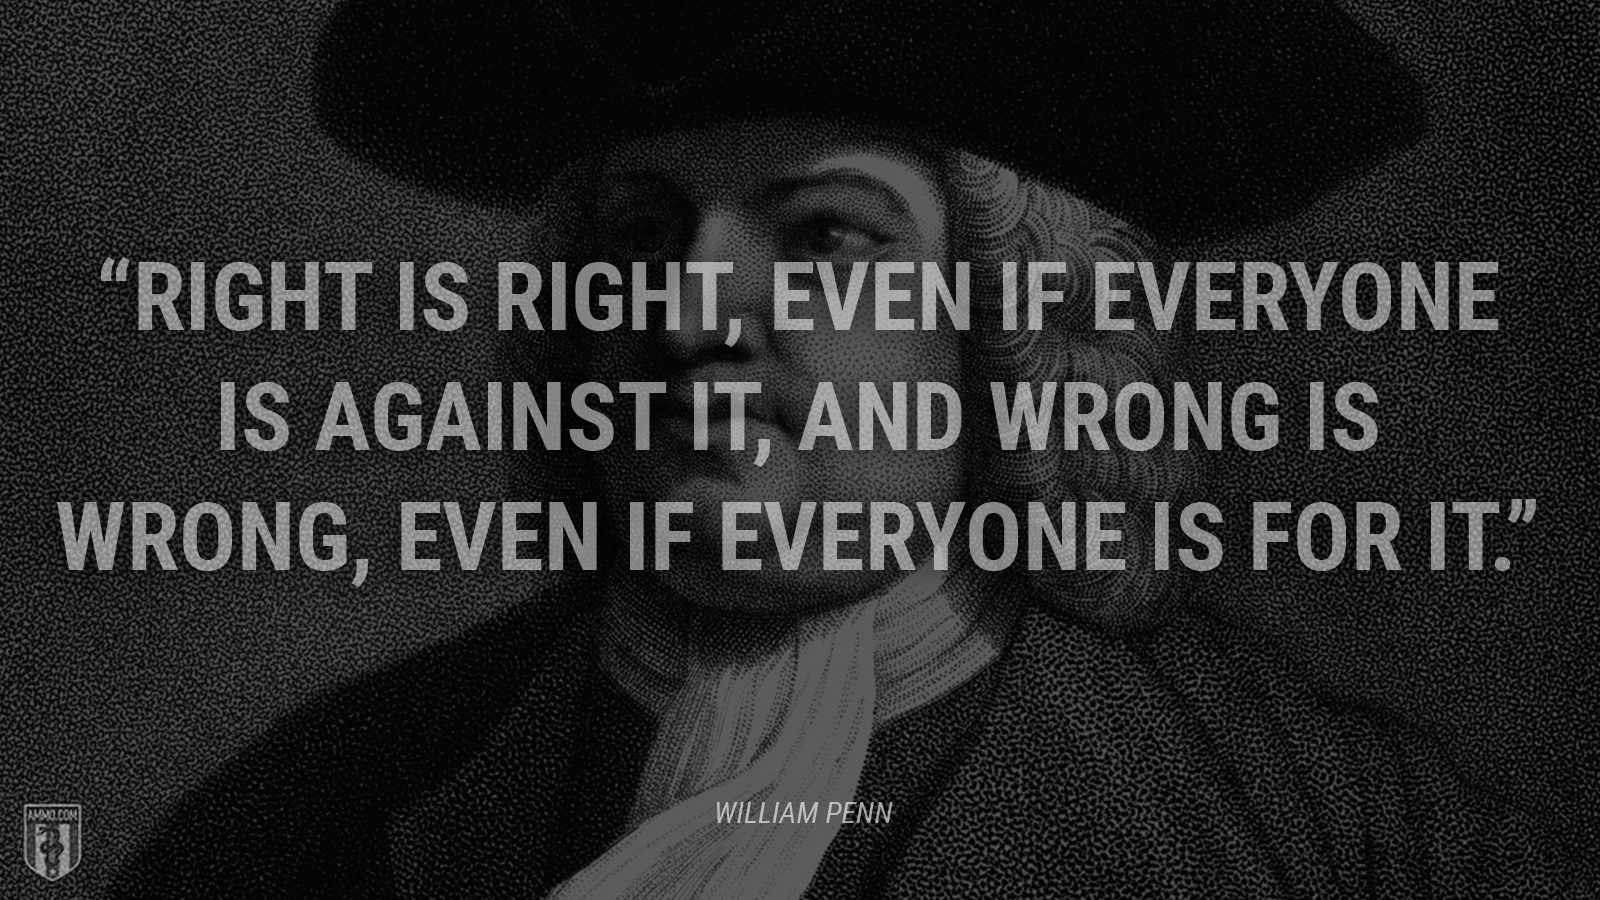 """Right is right, even if everyone is against it, and wrong is wrong, even if everyone is for it."" - William Penn"